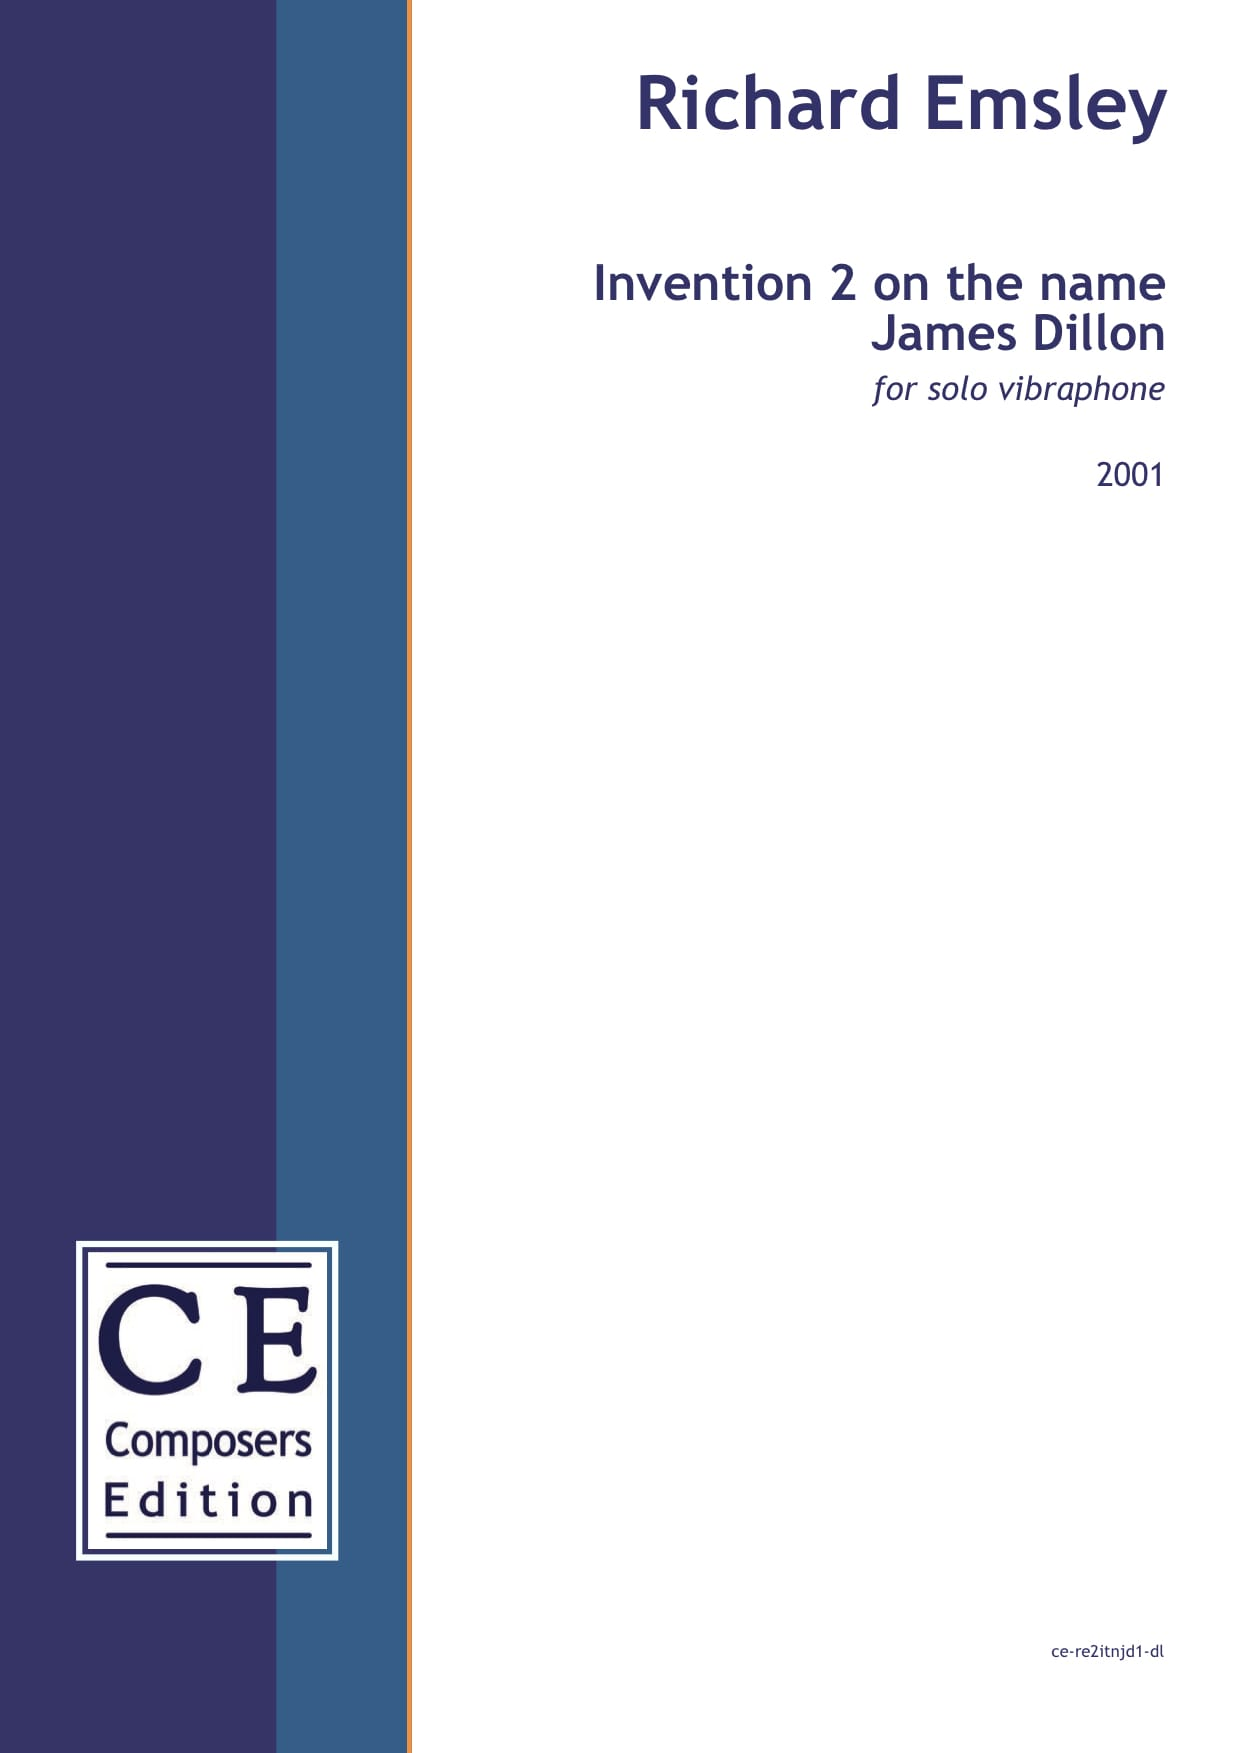 Richard Emsley: Invention 2 on the name James Dillon for solo vibraphone